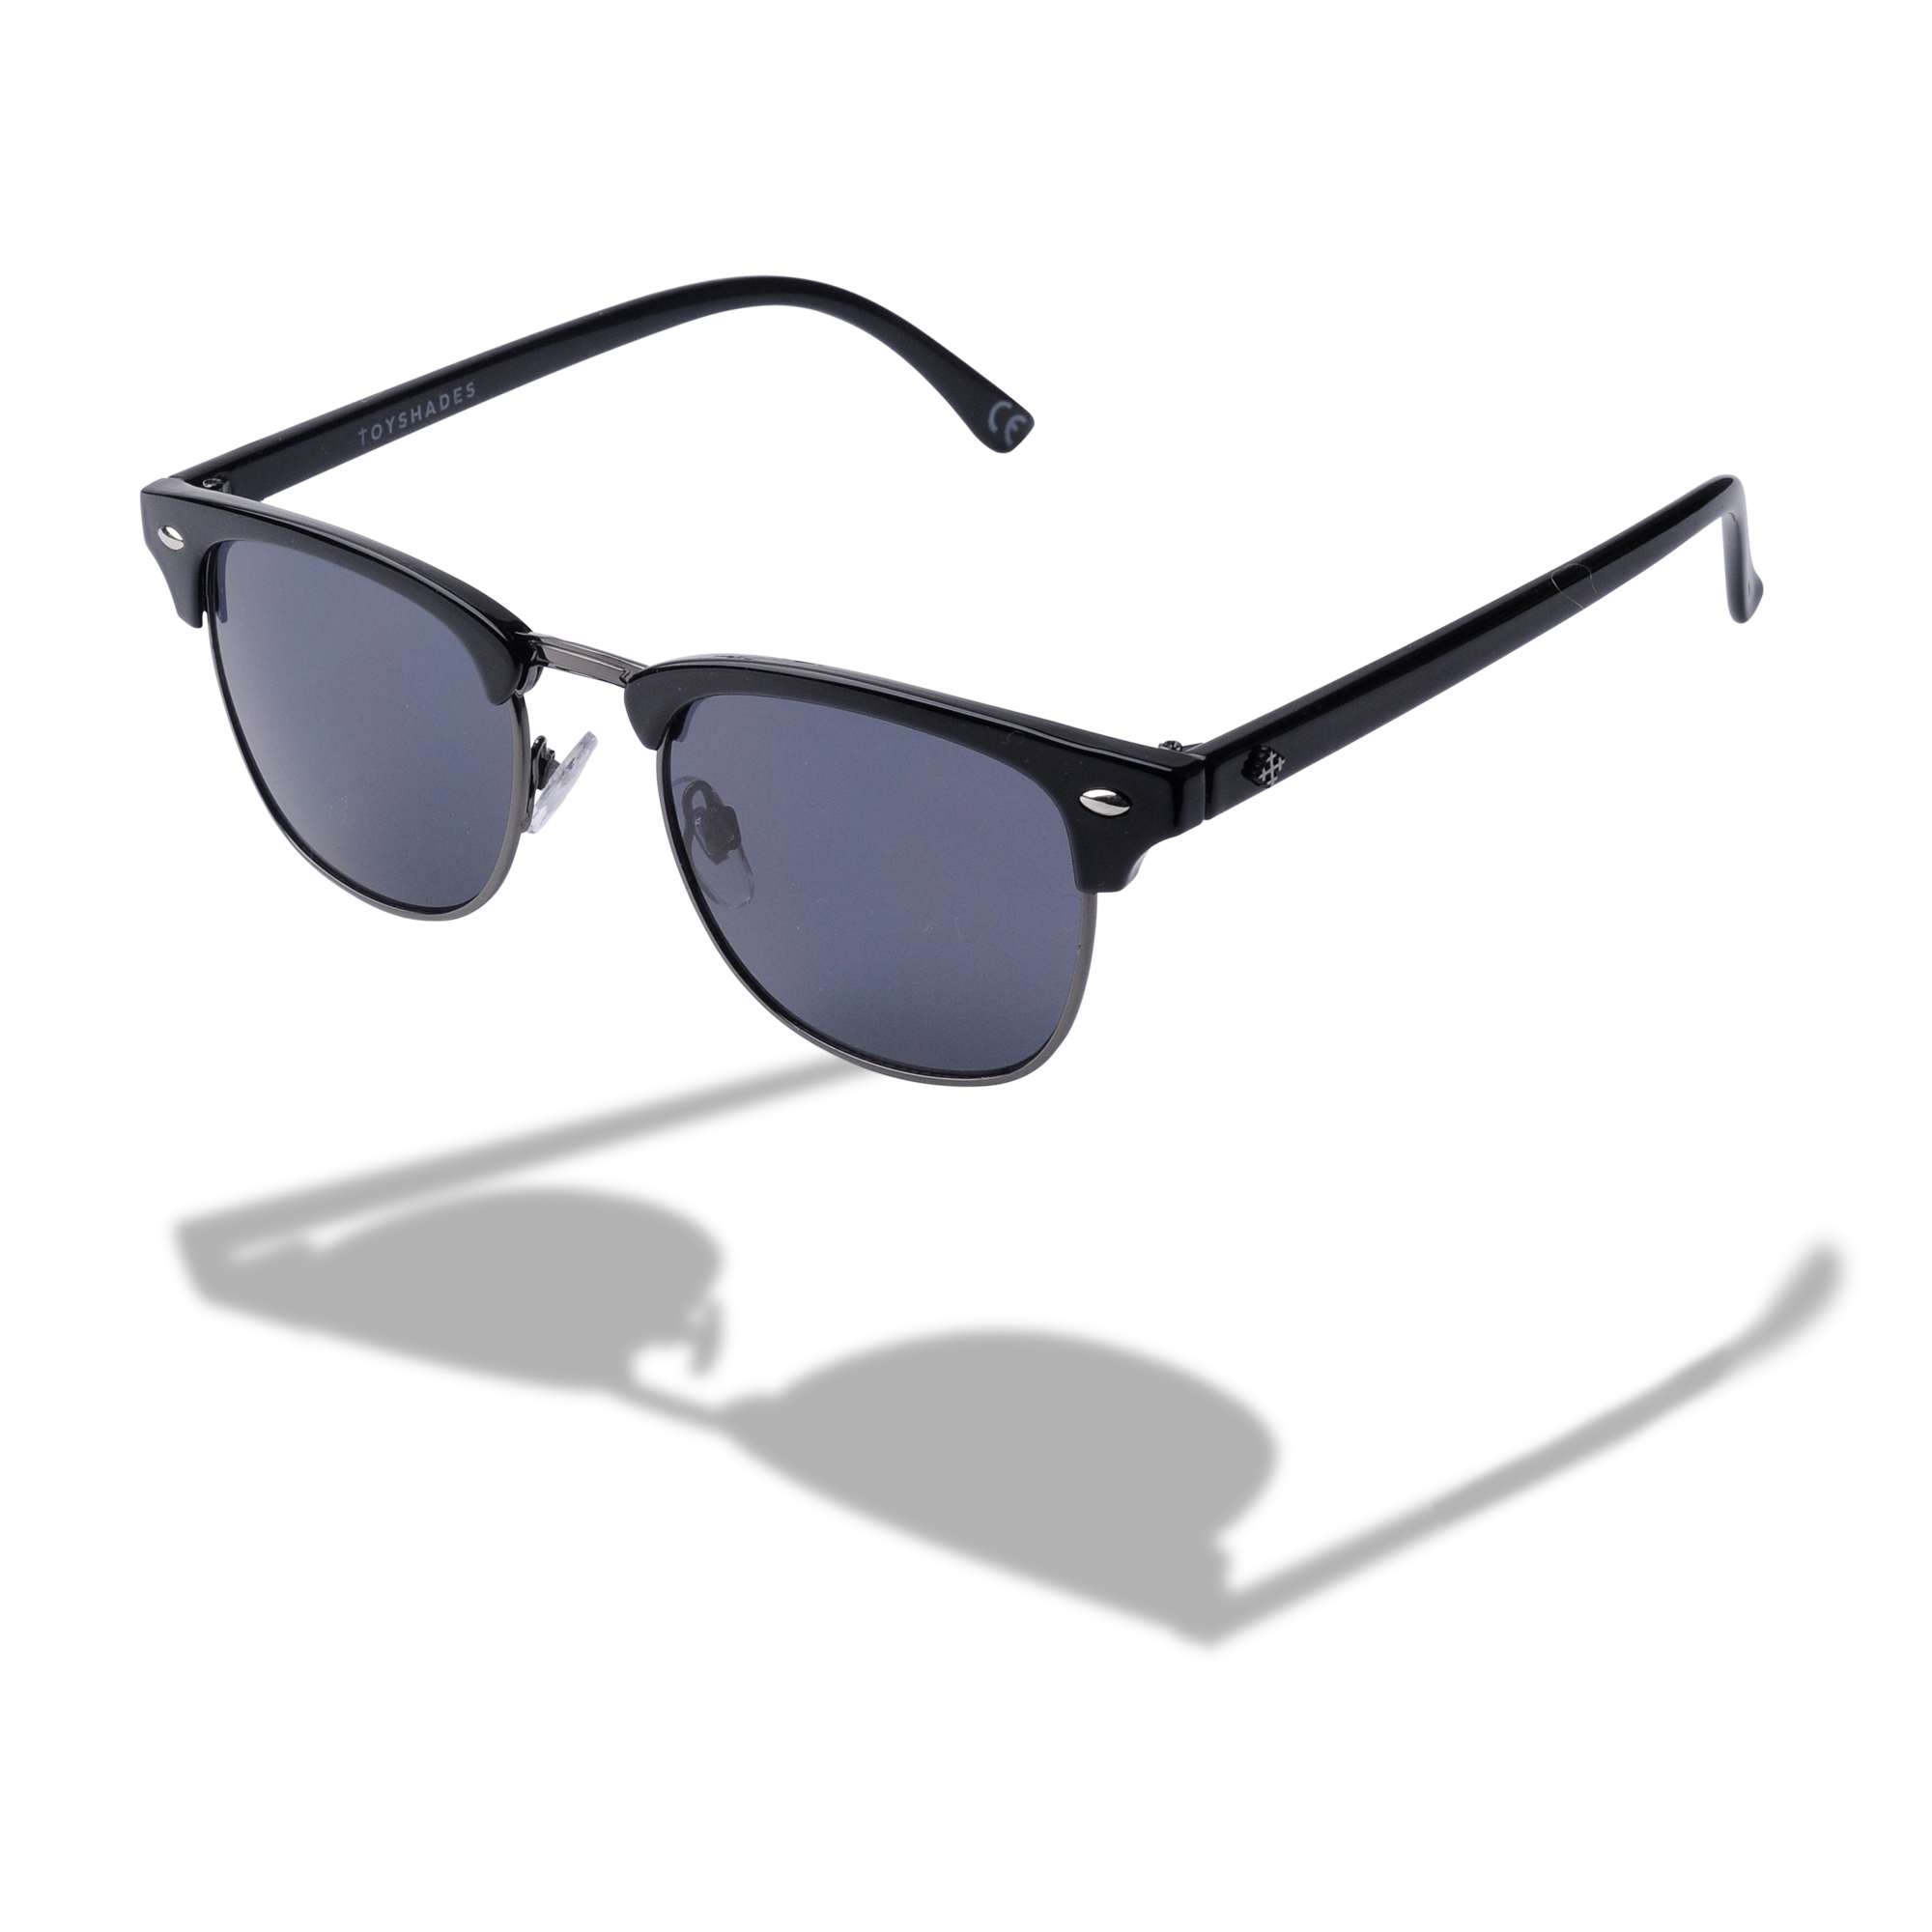 Butler (Rx) - Black & Grey Lens